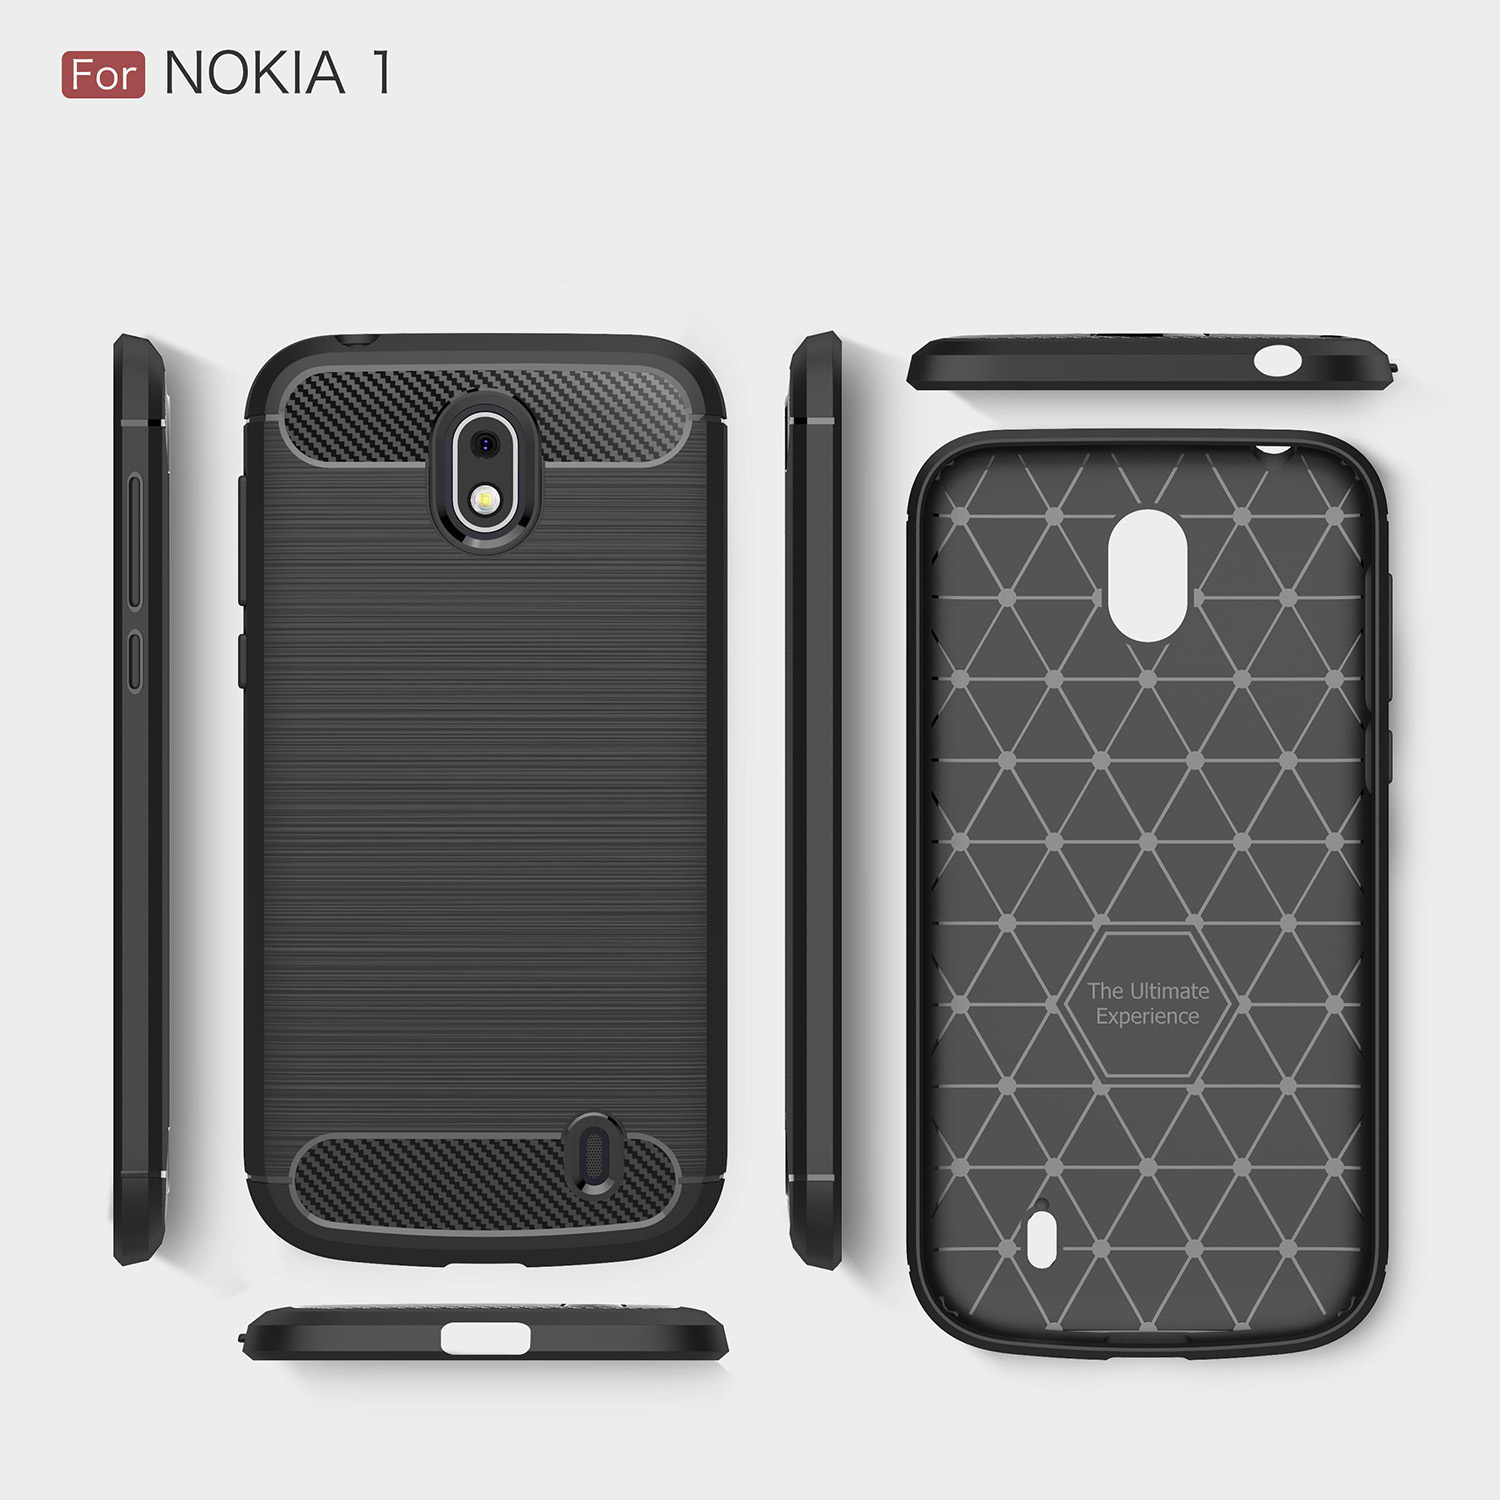 separation shoes f6265 7c601 Detail Feedback Questions about Case for Nokia 1 TPU Silicone Case ...